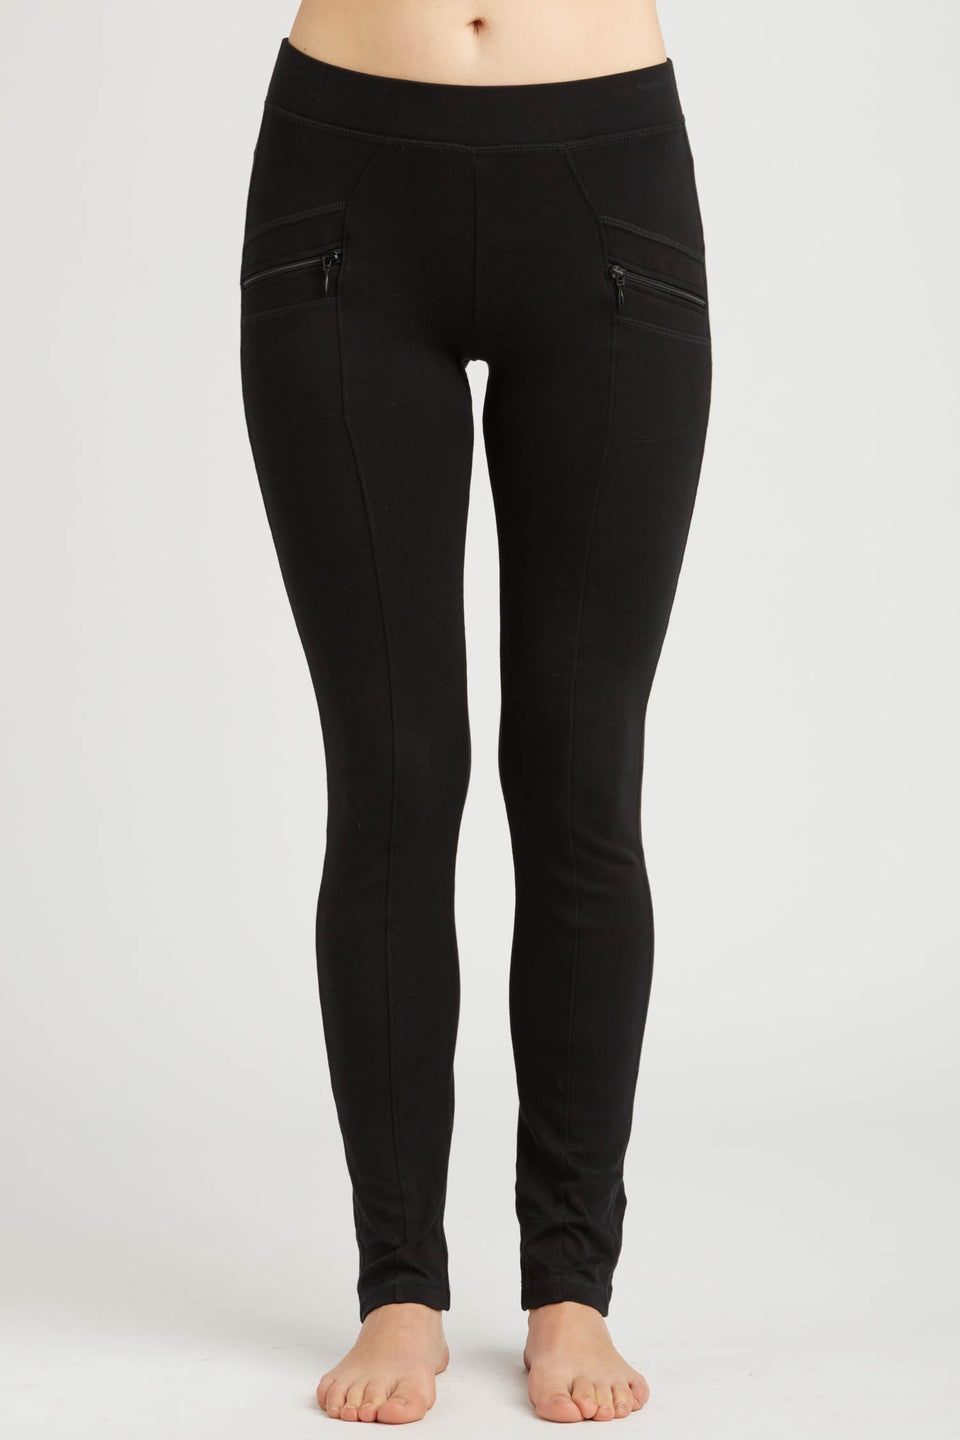 Riding Pant in Black